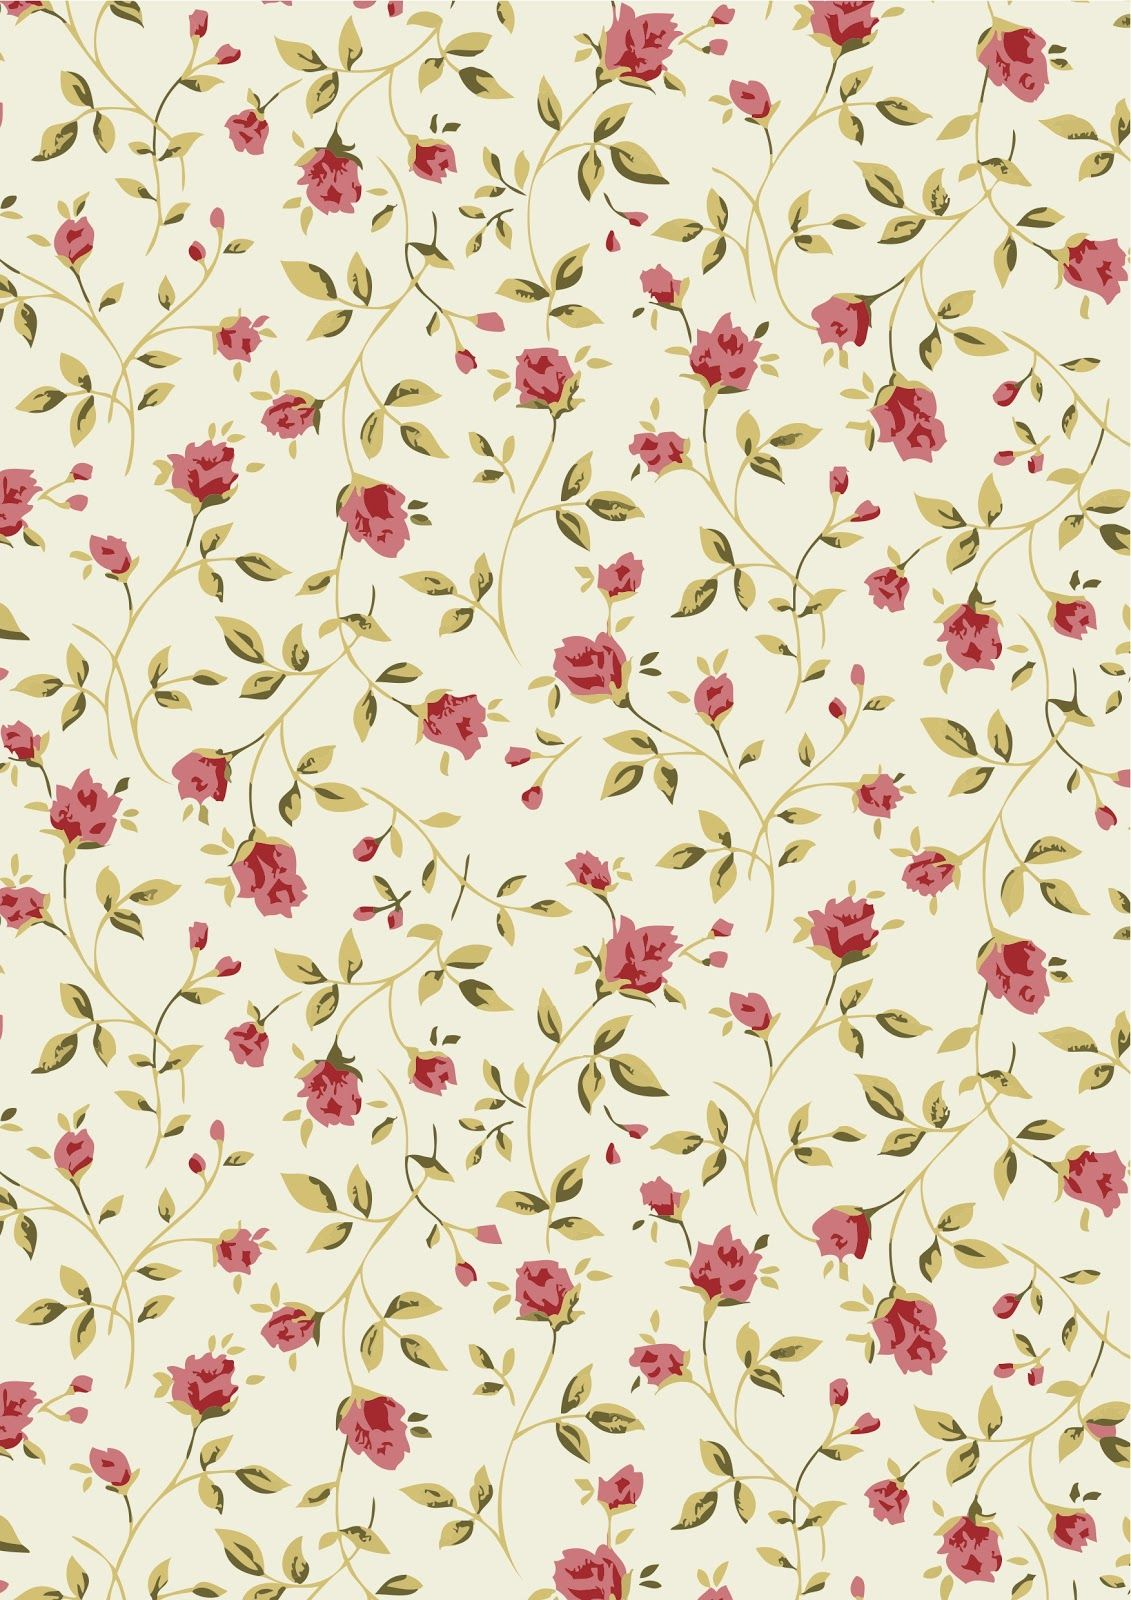 free vector small flower pattern background 05 scrap paper floral